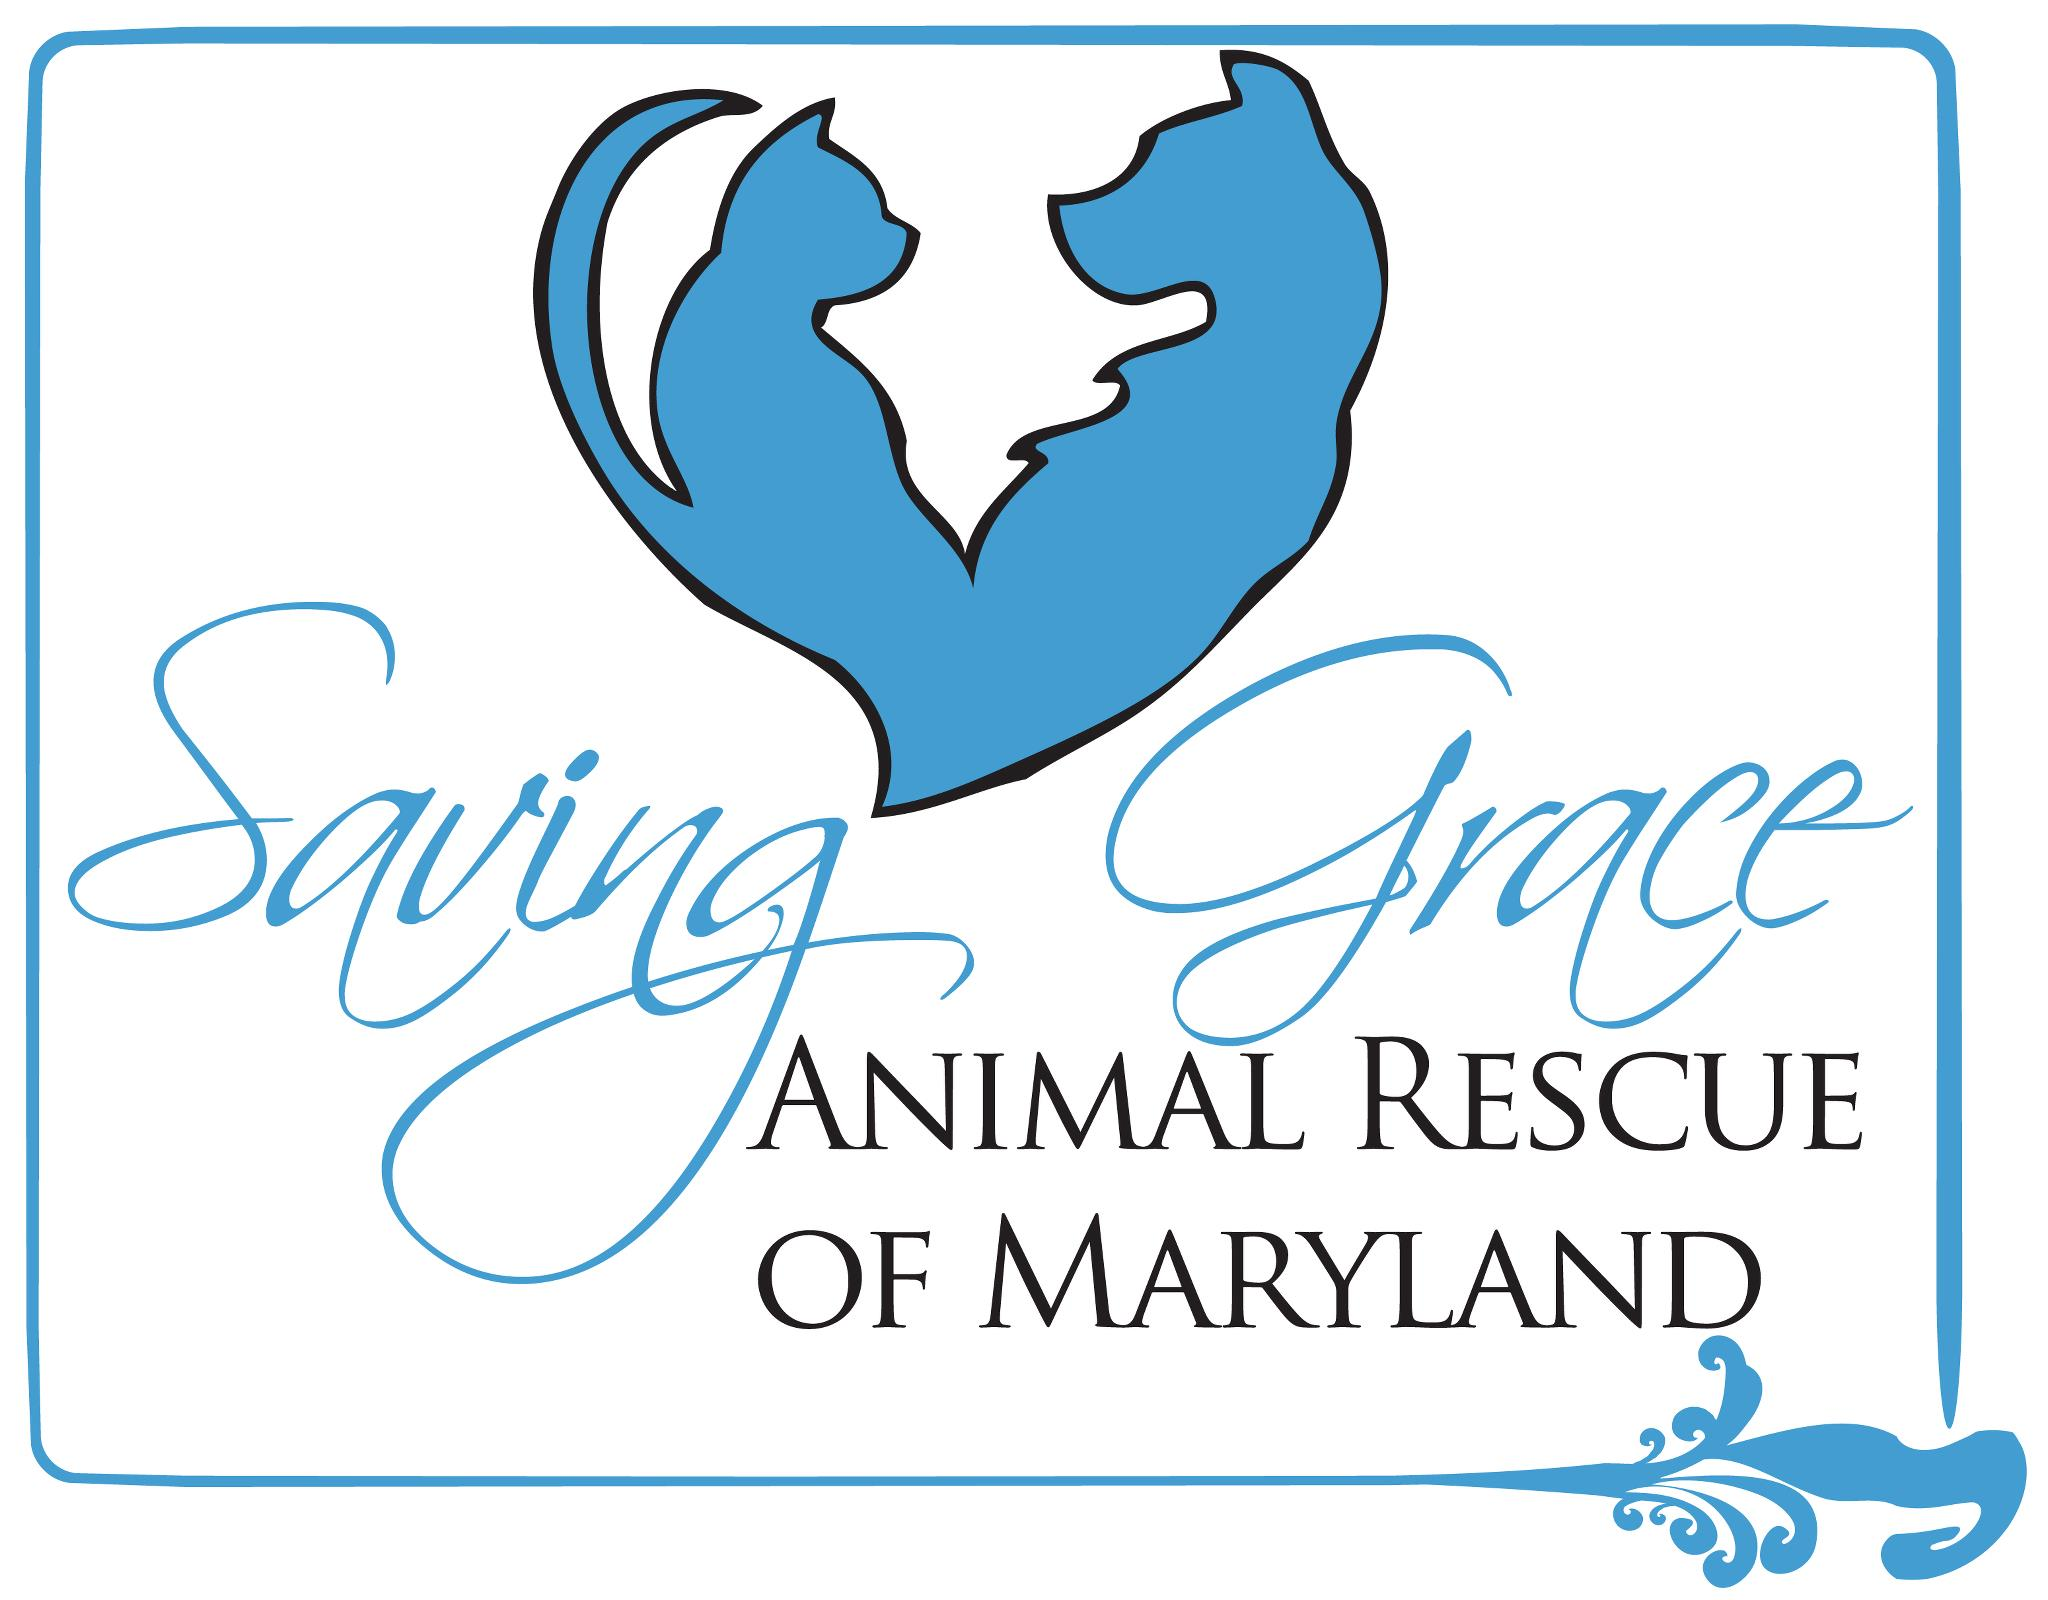 Where can you get a list of animal shelters in Maryland?